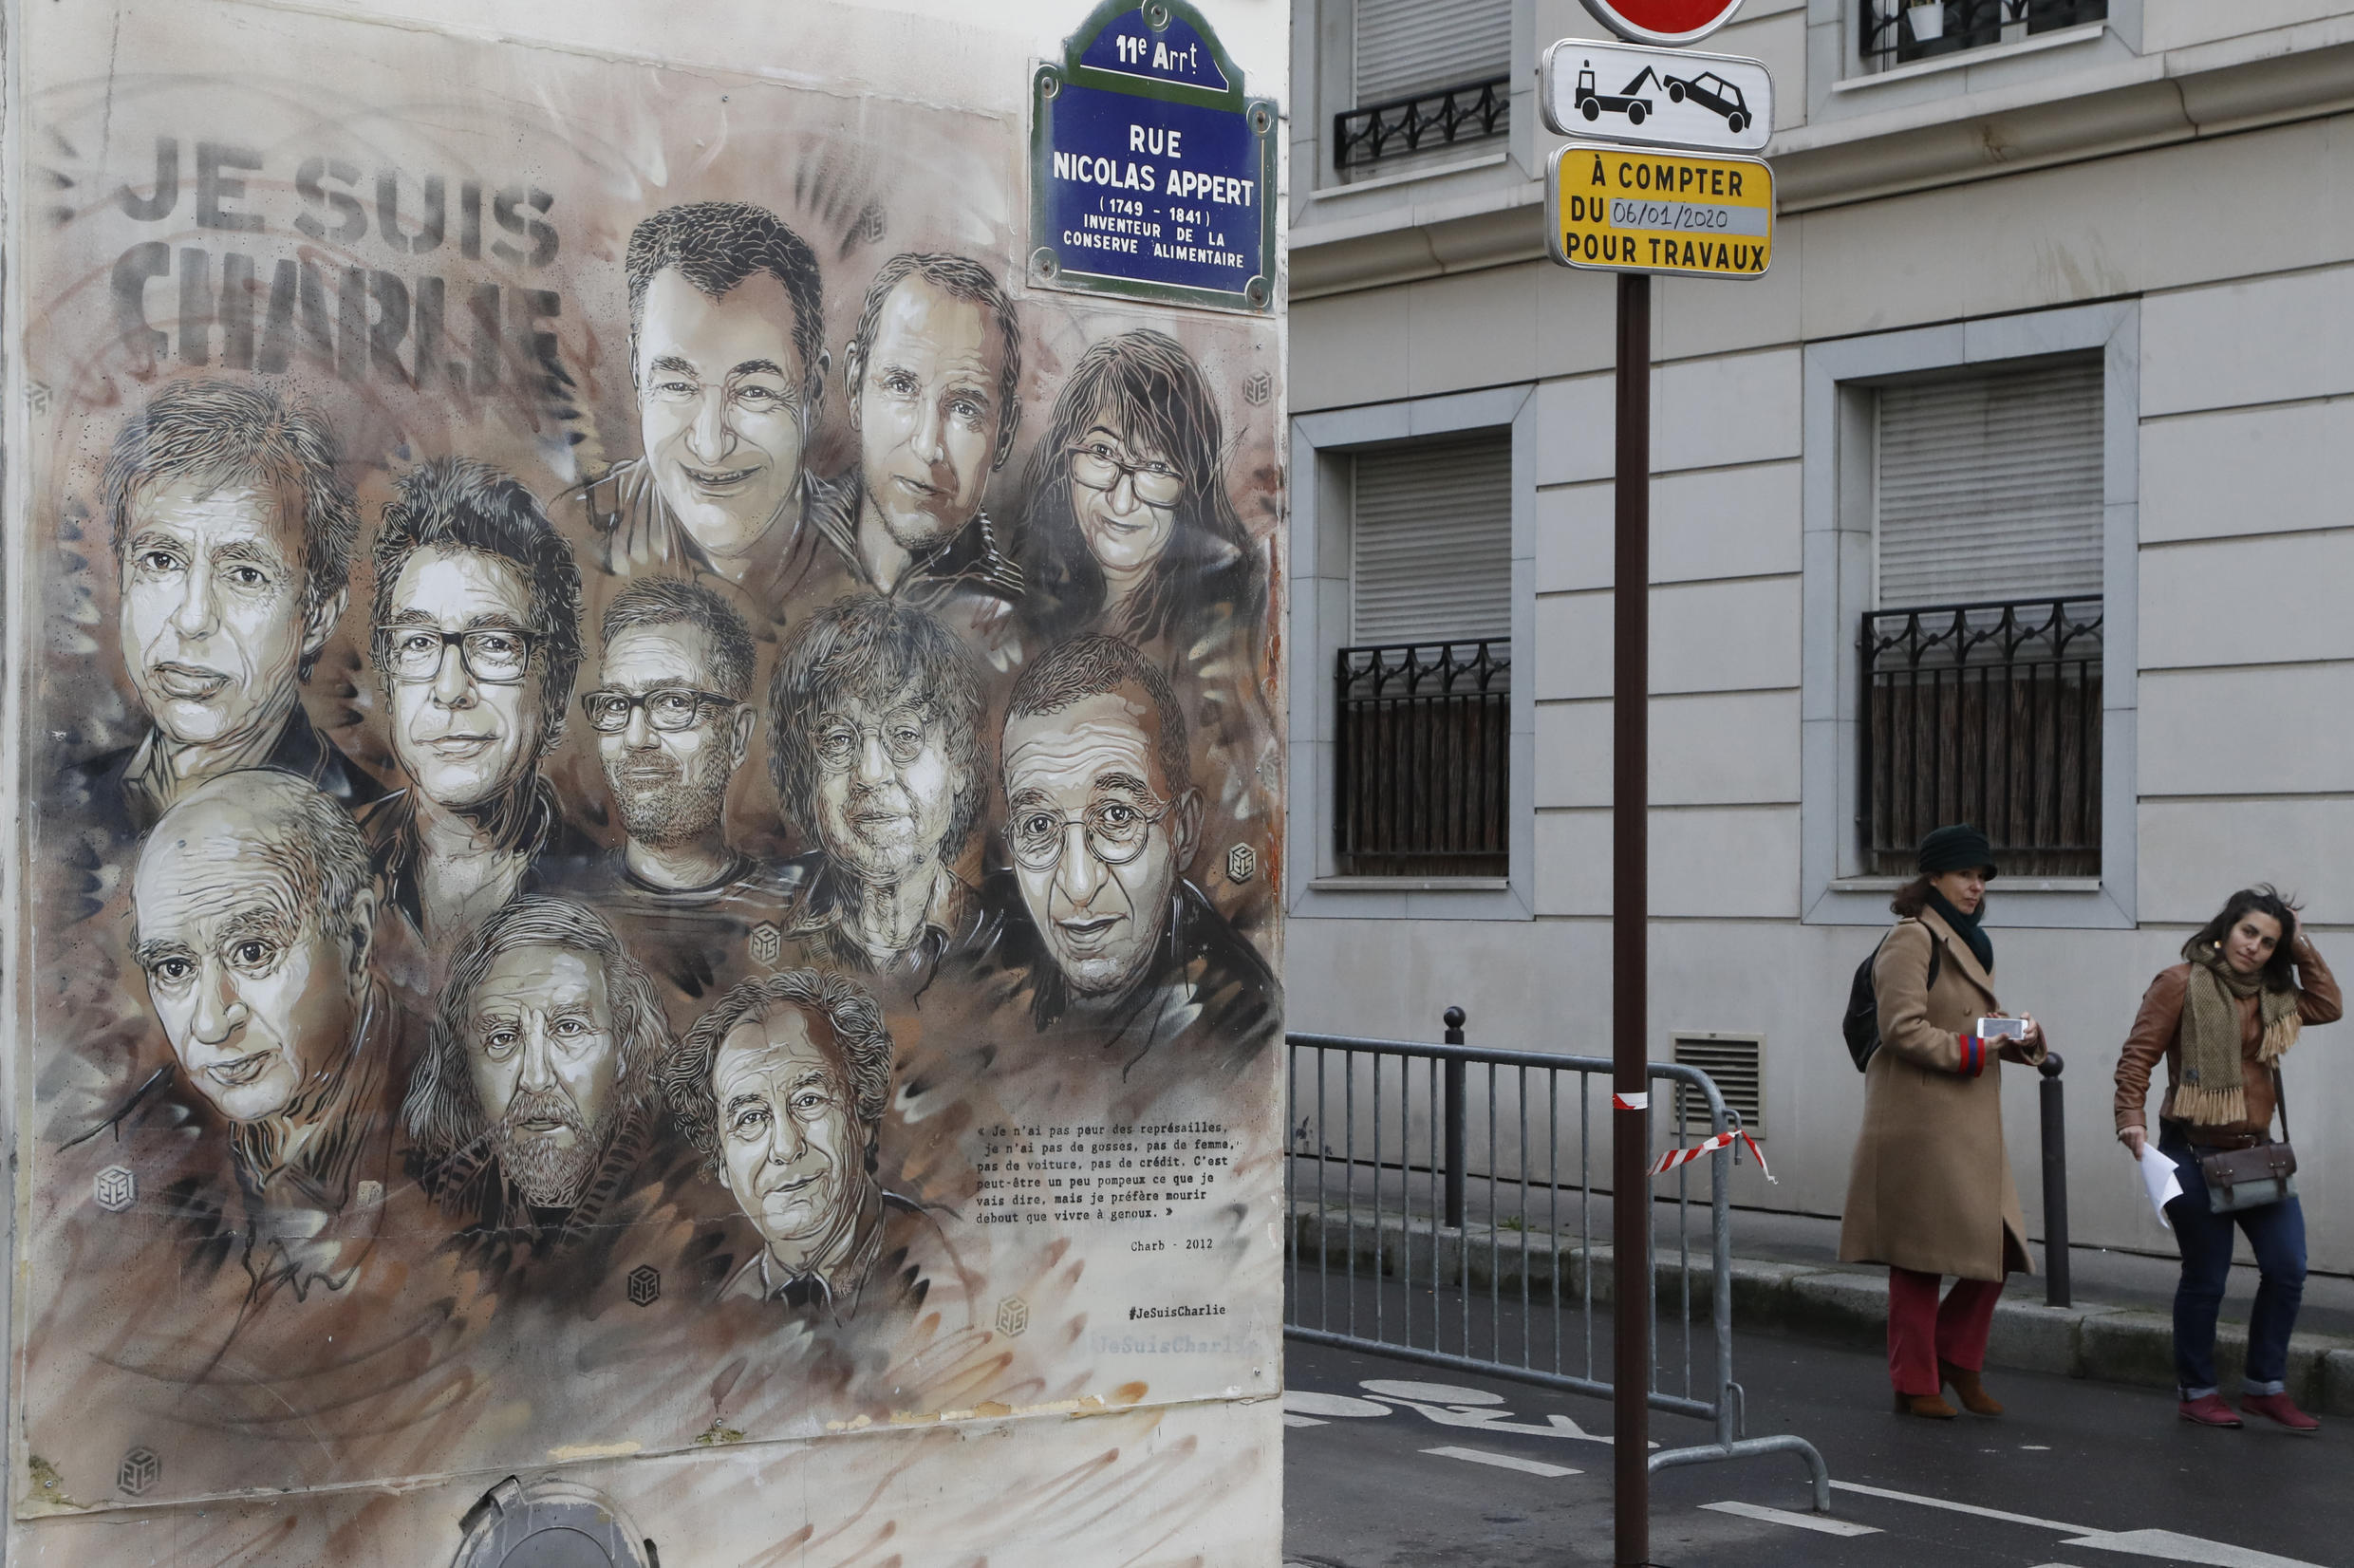 A mural depicting victims of the deadly attack on the Charlie Hebdo newspaper near its offices in Paris.